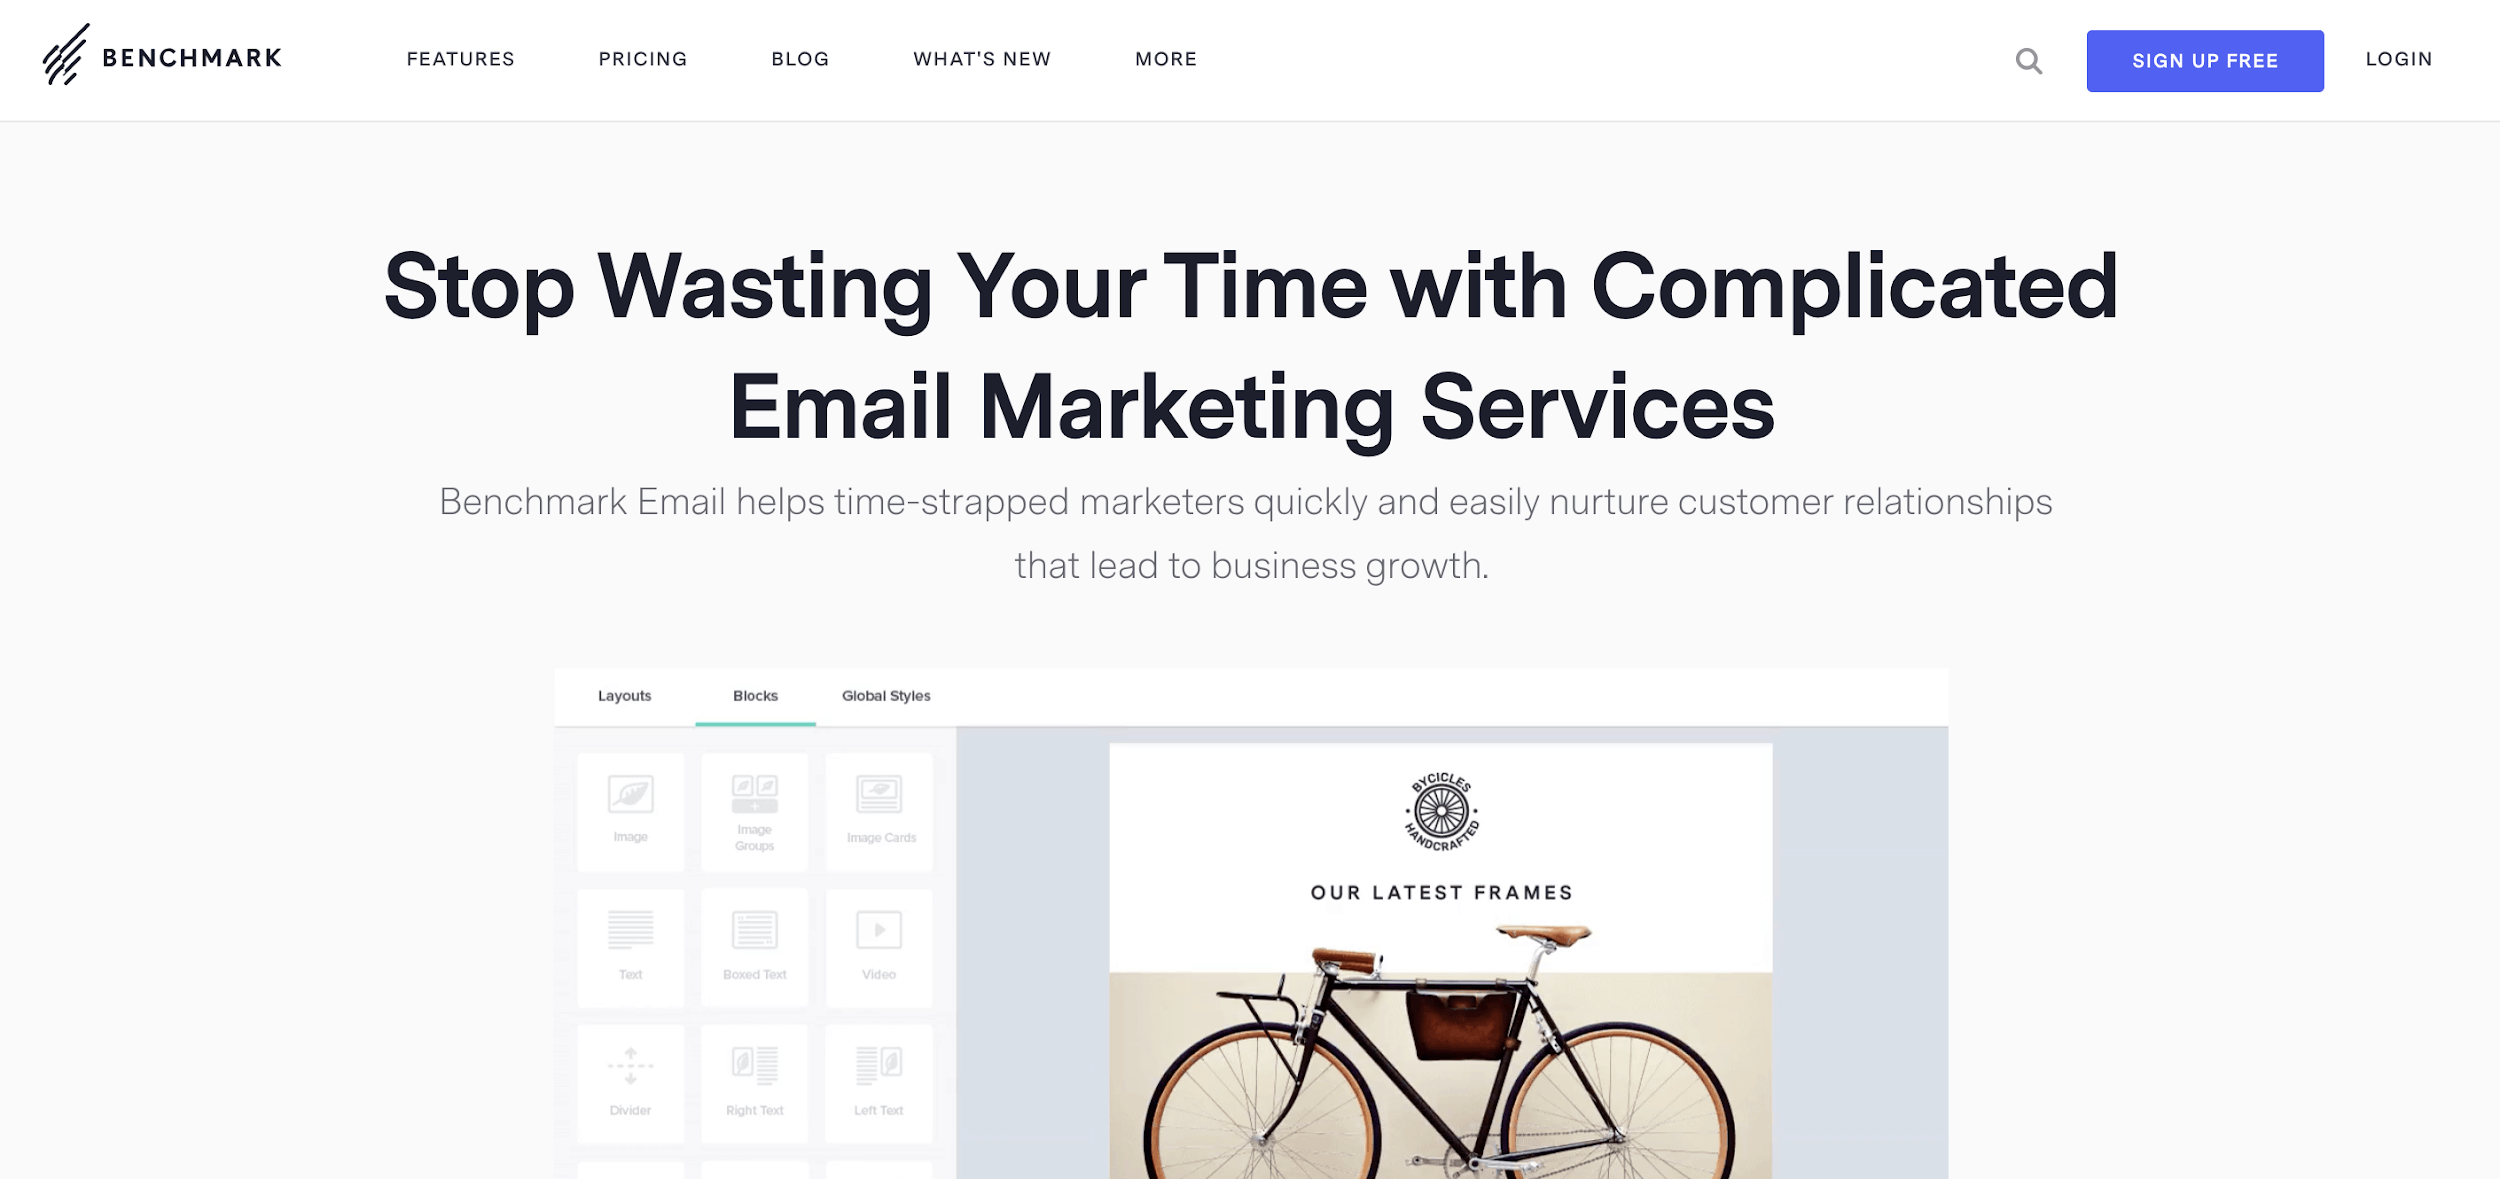 7 Best Email Marketing Services with Free Trials-image1